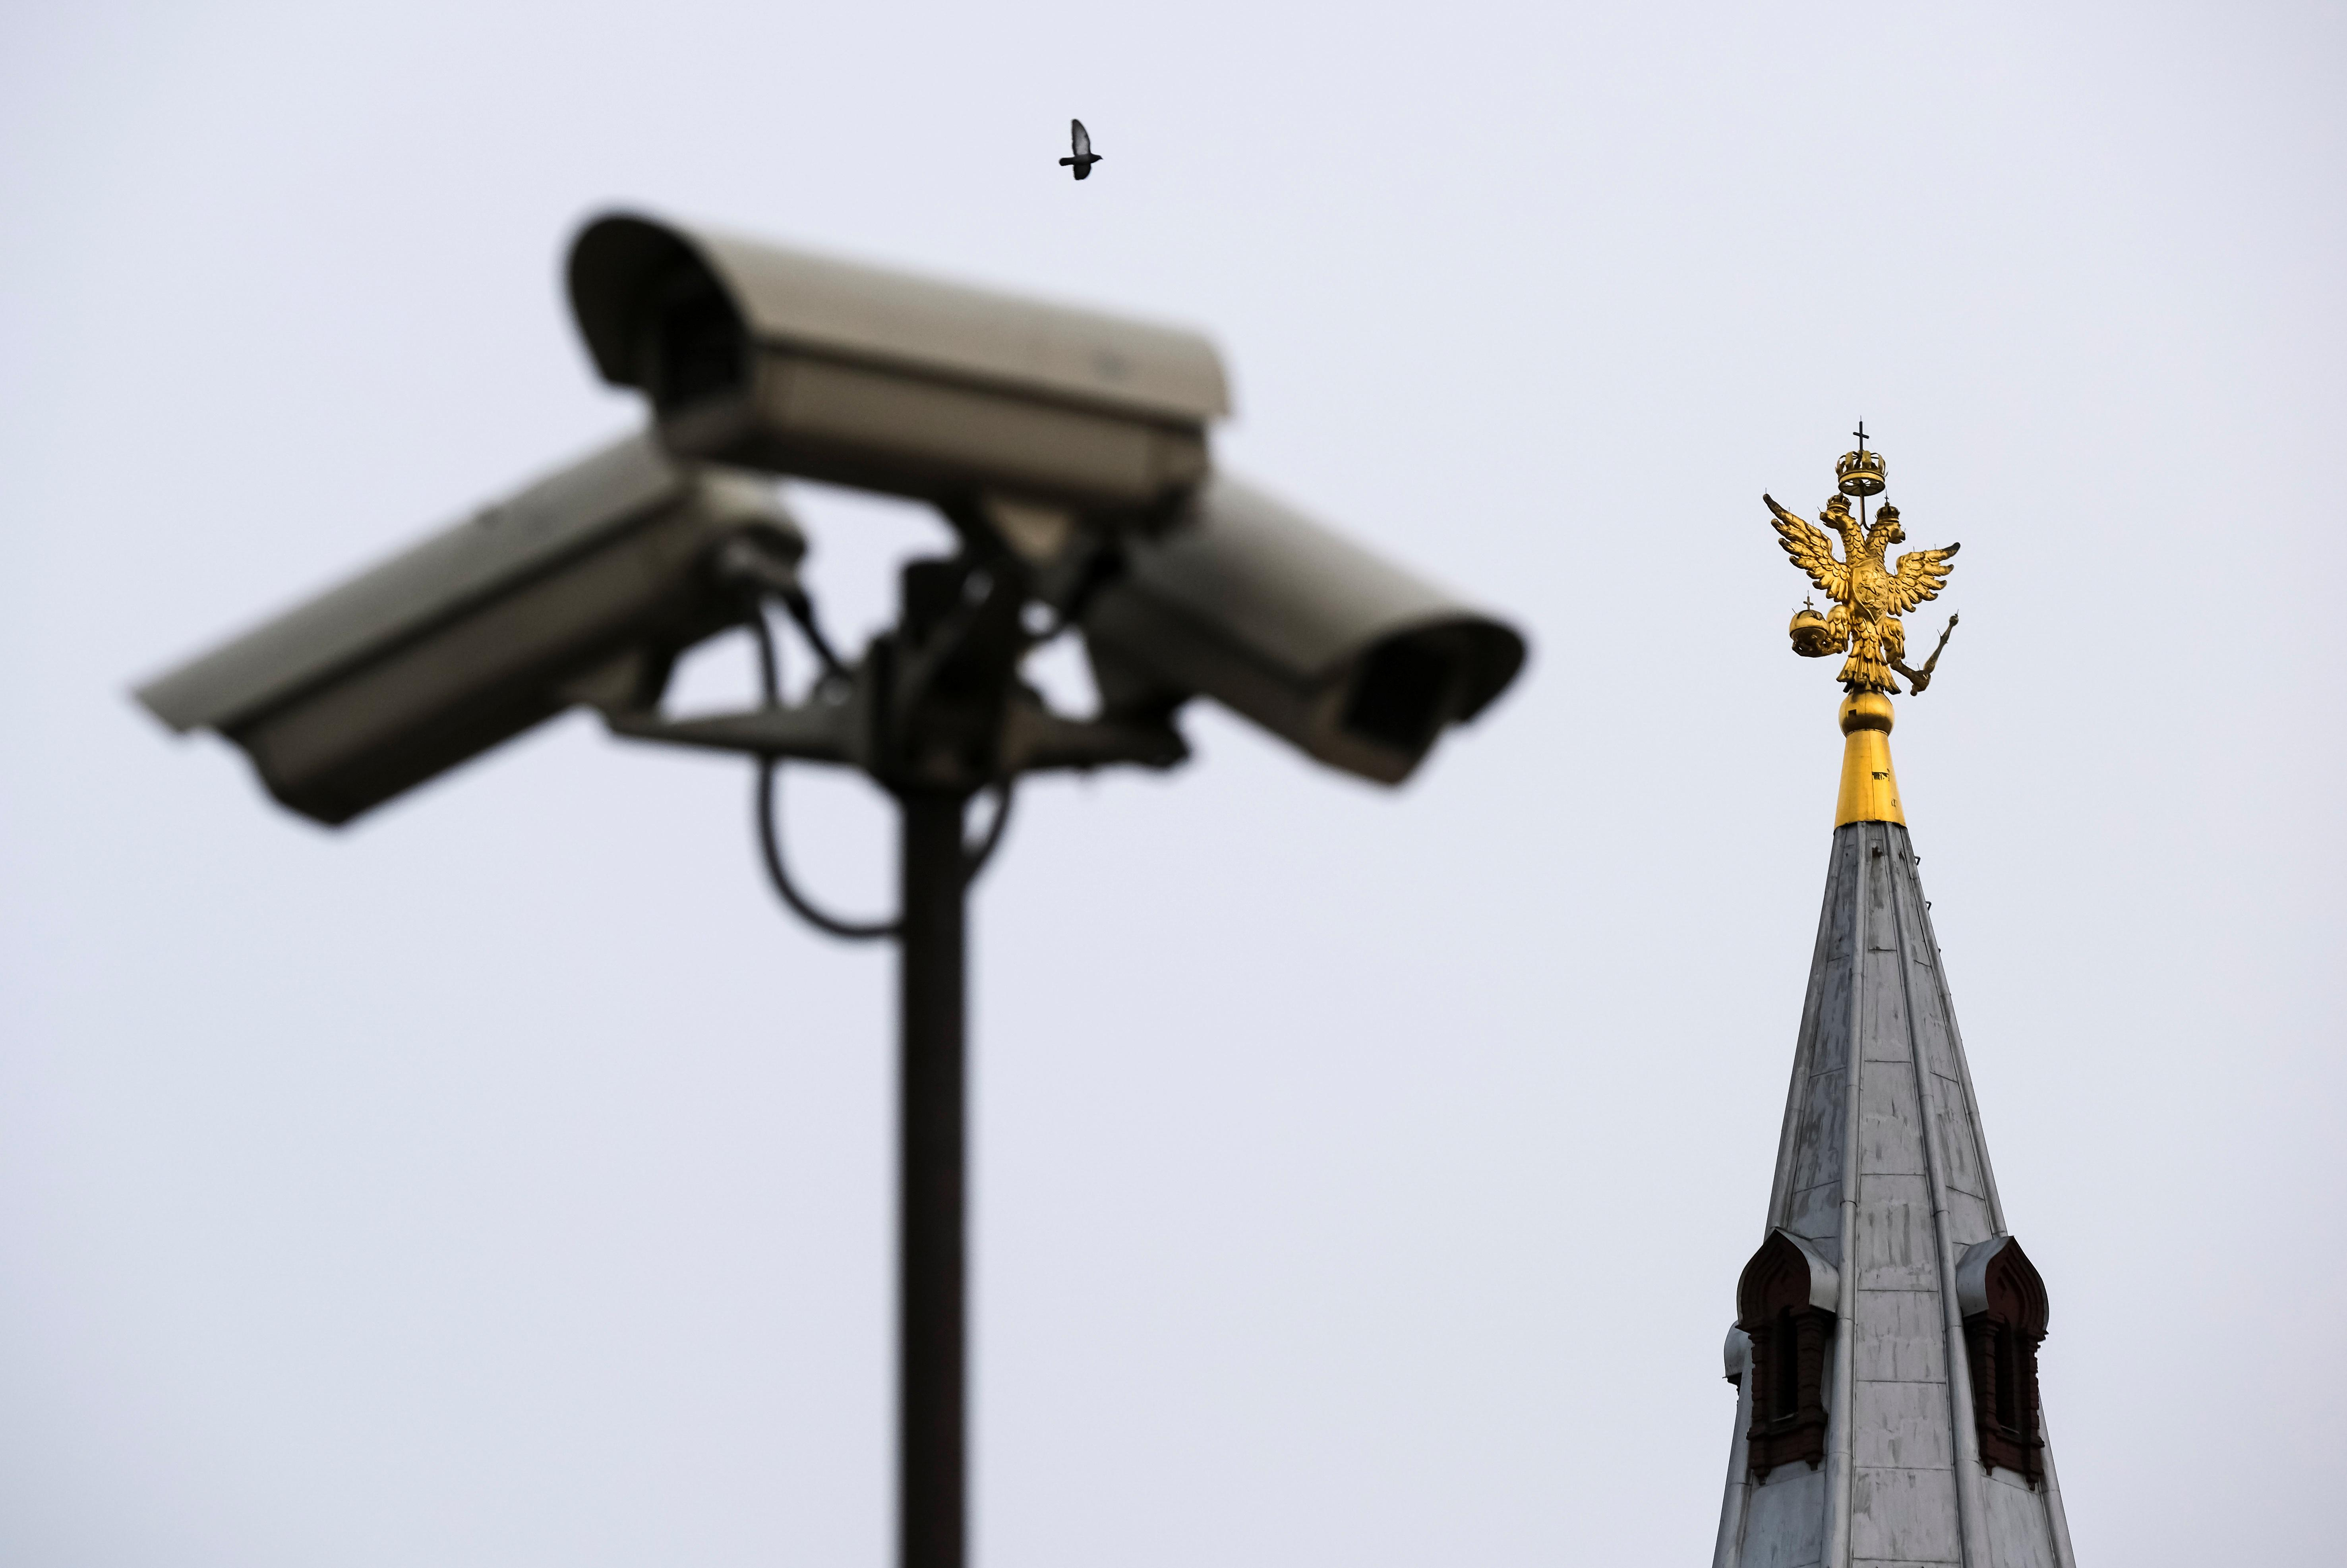 Moscow court case challenges city's facial recognition use after launch